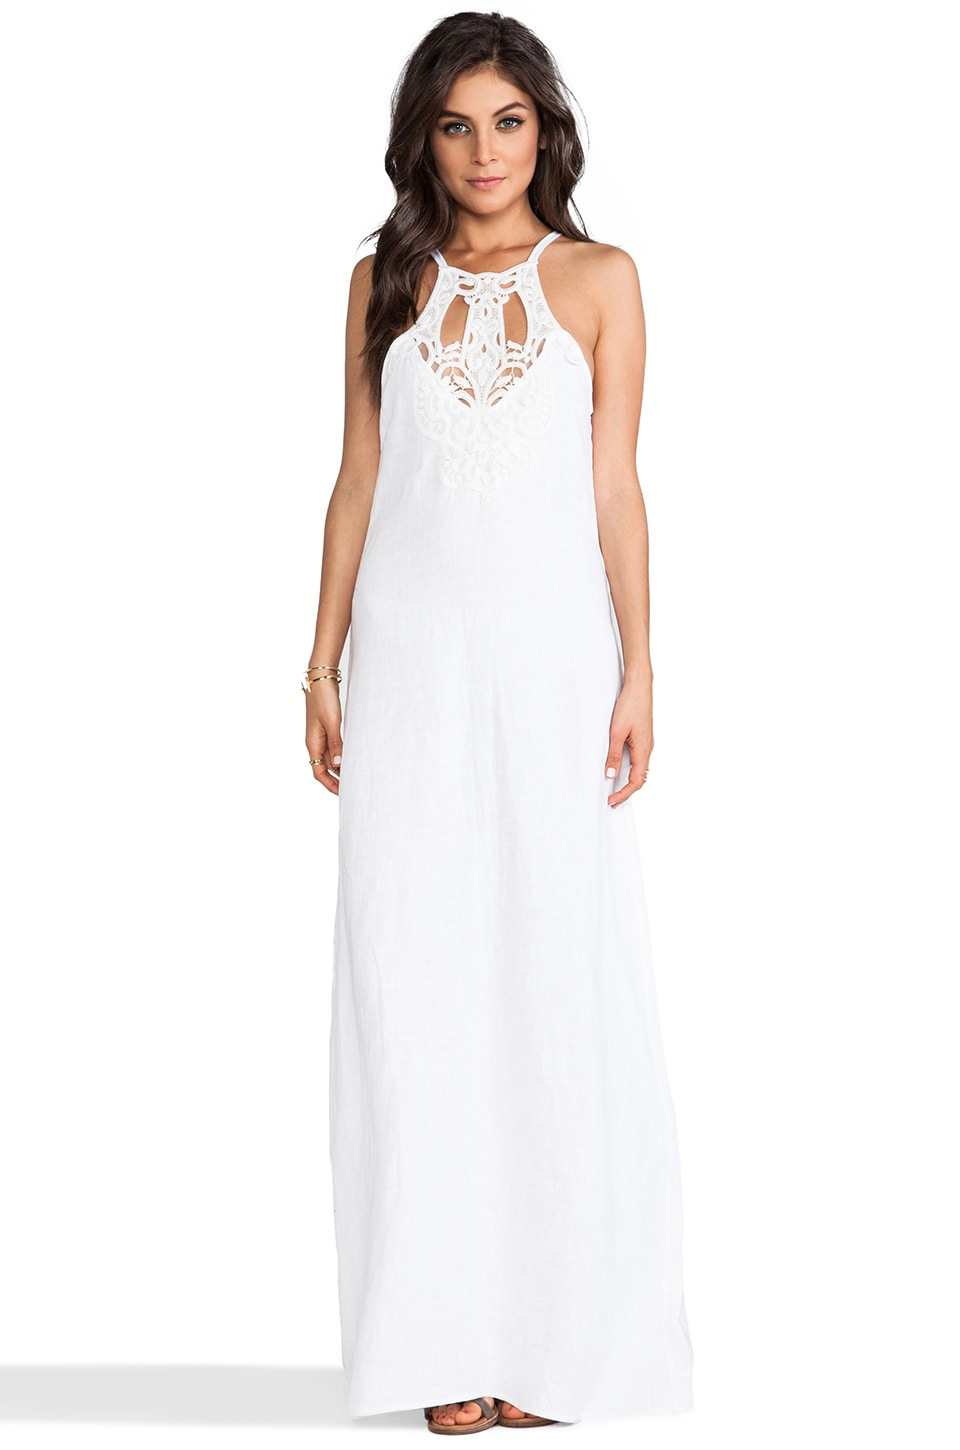 Lisa Maree A Night Alone Dress in Creme Fraiche